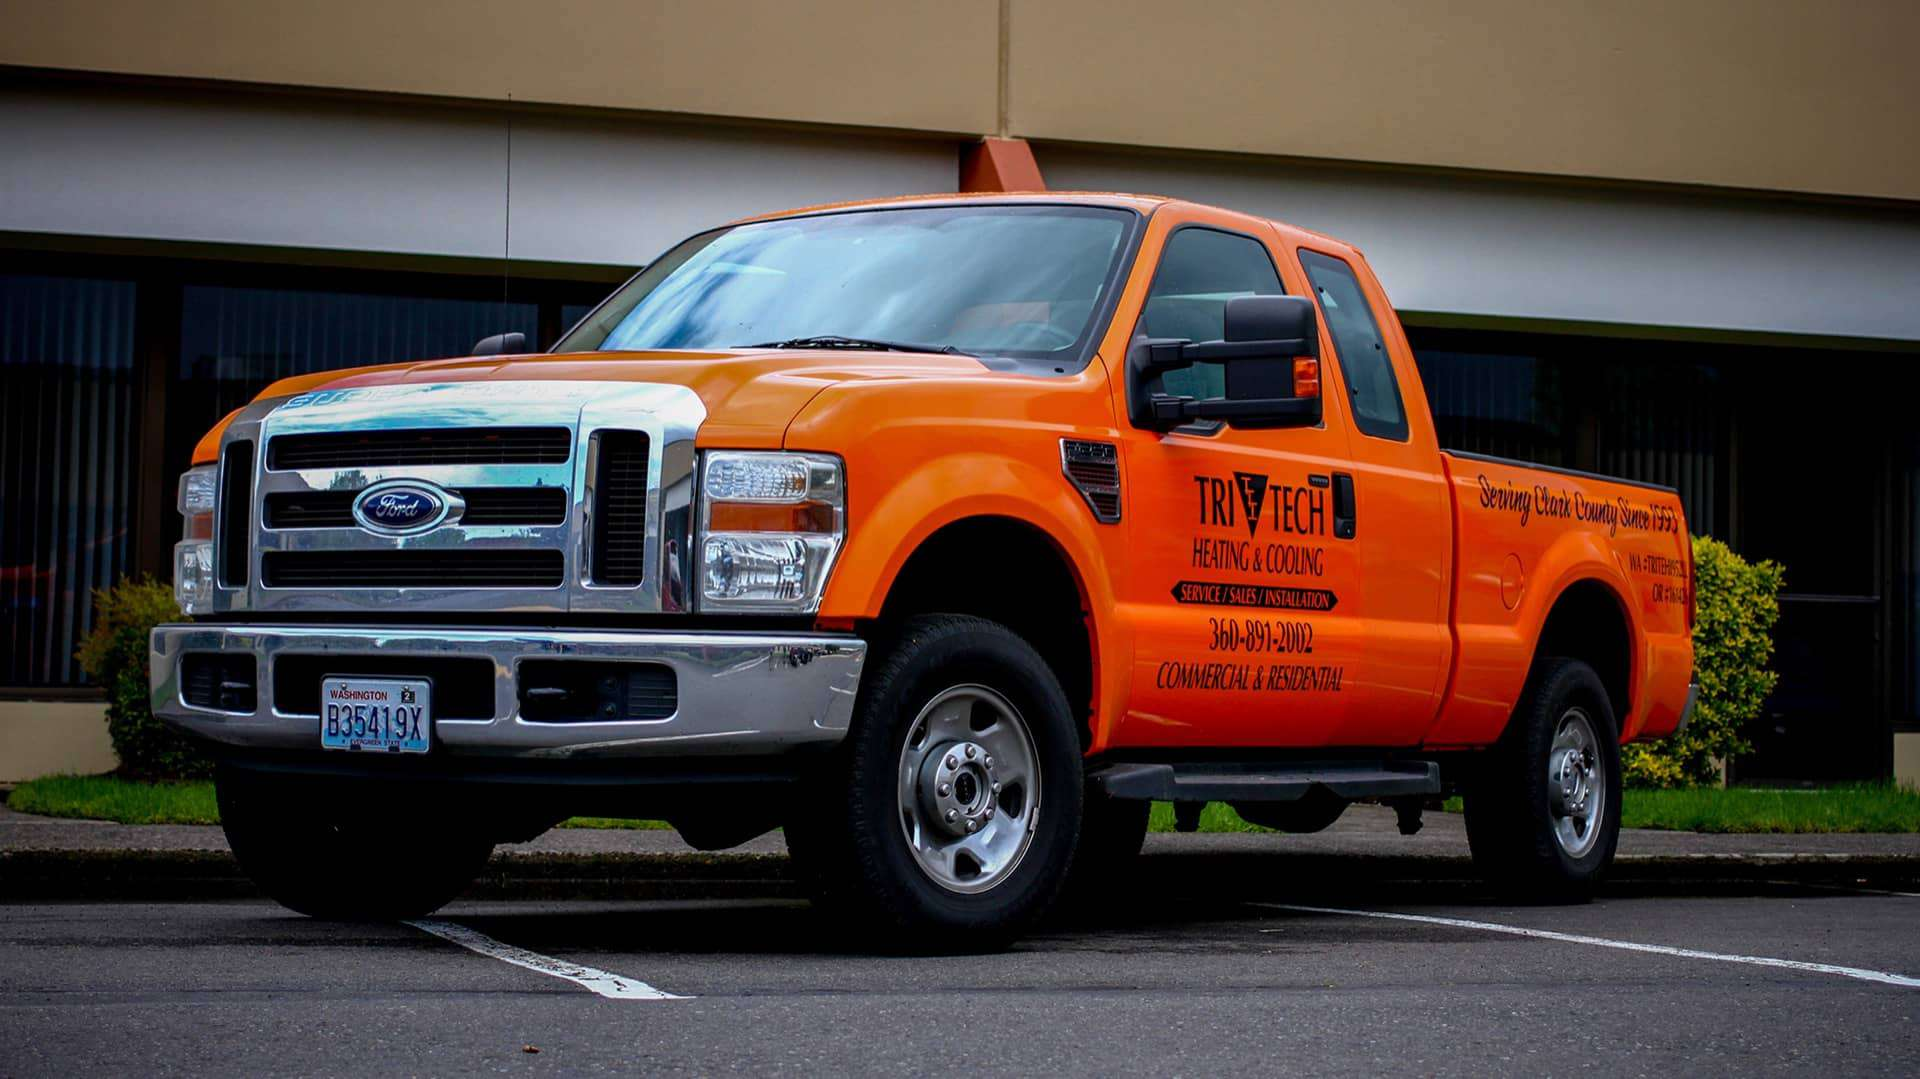 Fleet Graphics Lettering for Tri-Tech Heating and Cooling on their Ford F250